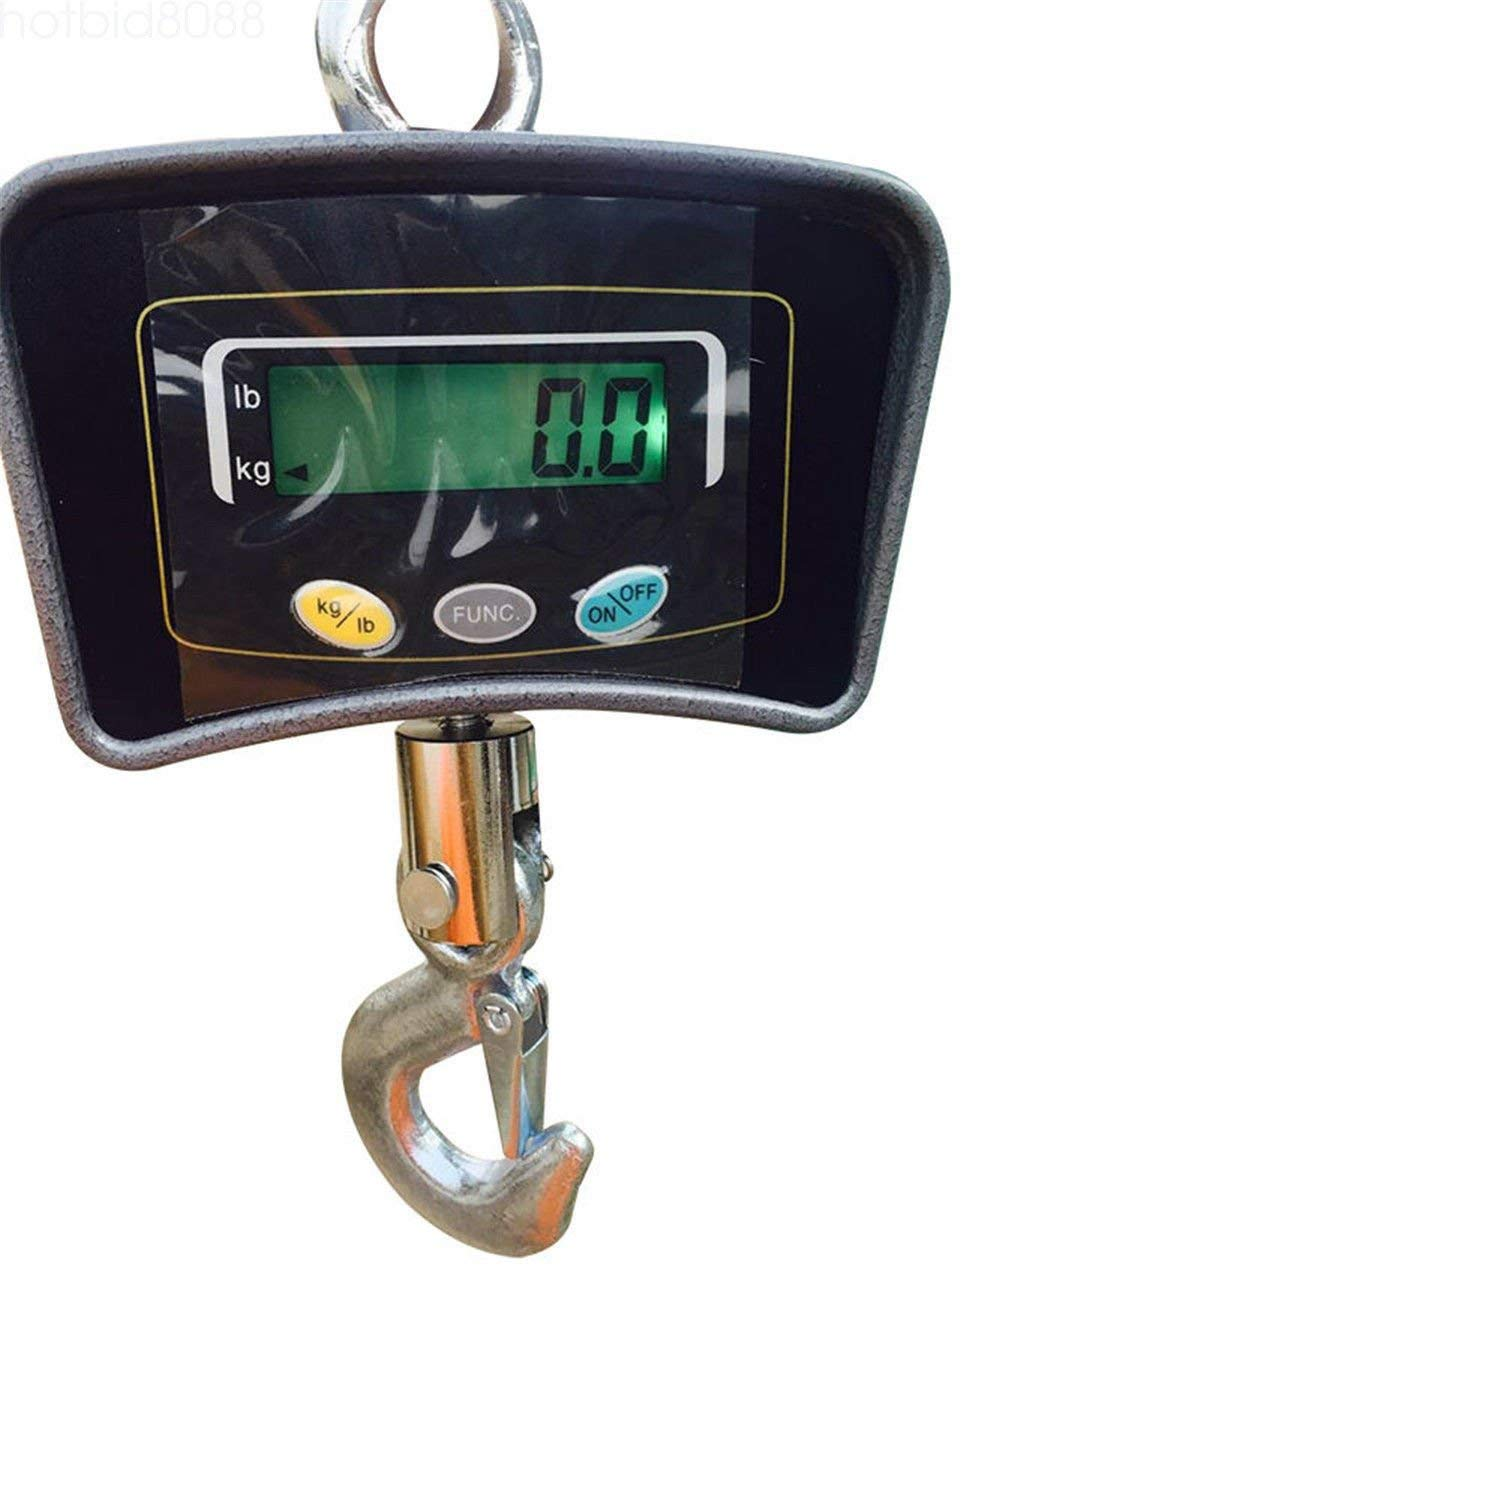 c1d61cb4d821 Cheap Ocs Crane Scale Portable, find Ocs Crane Scale Portable deals ...